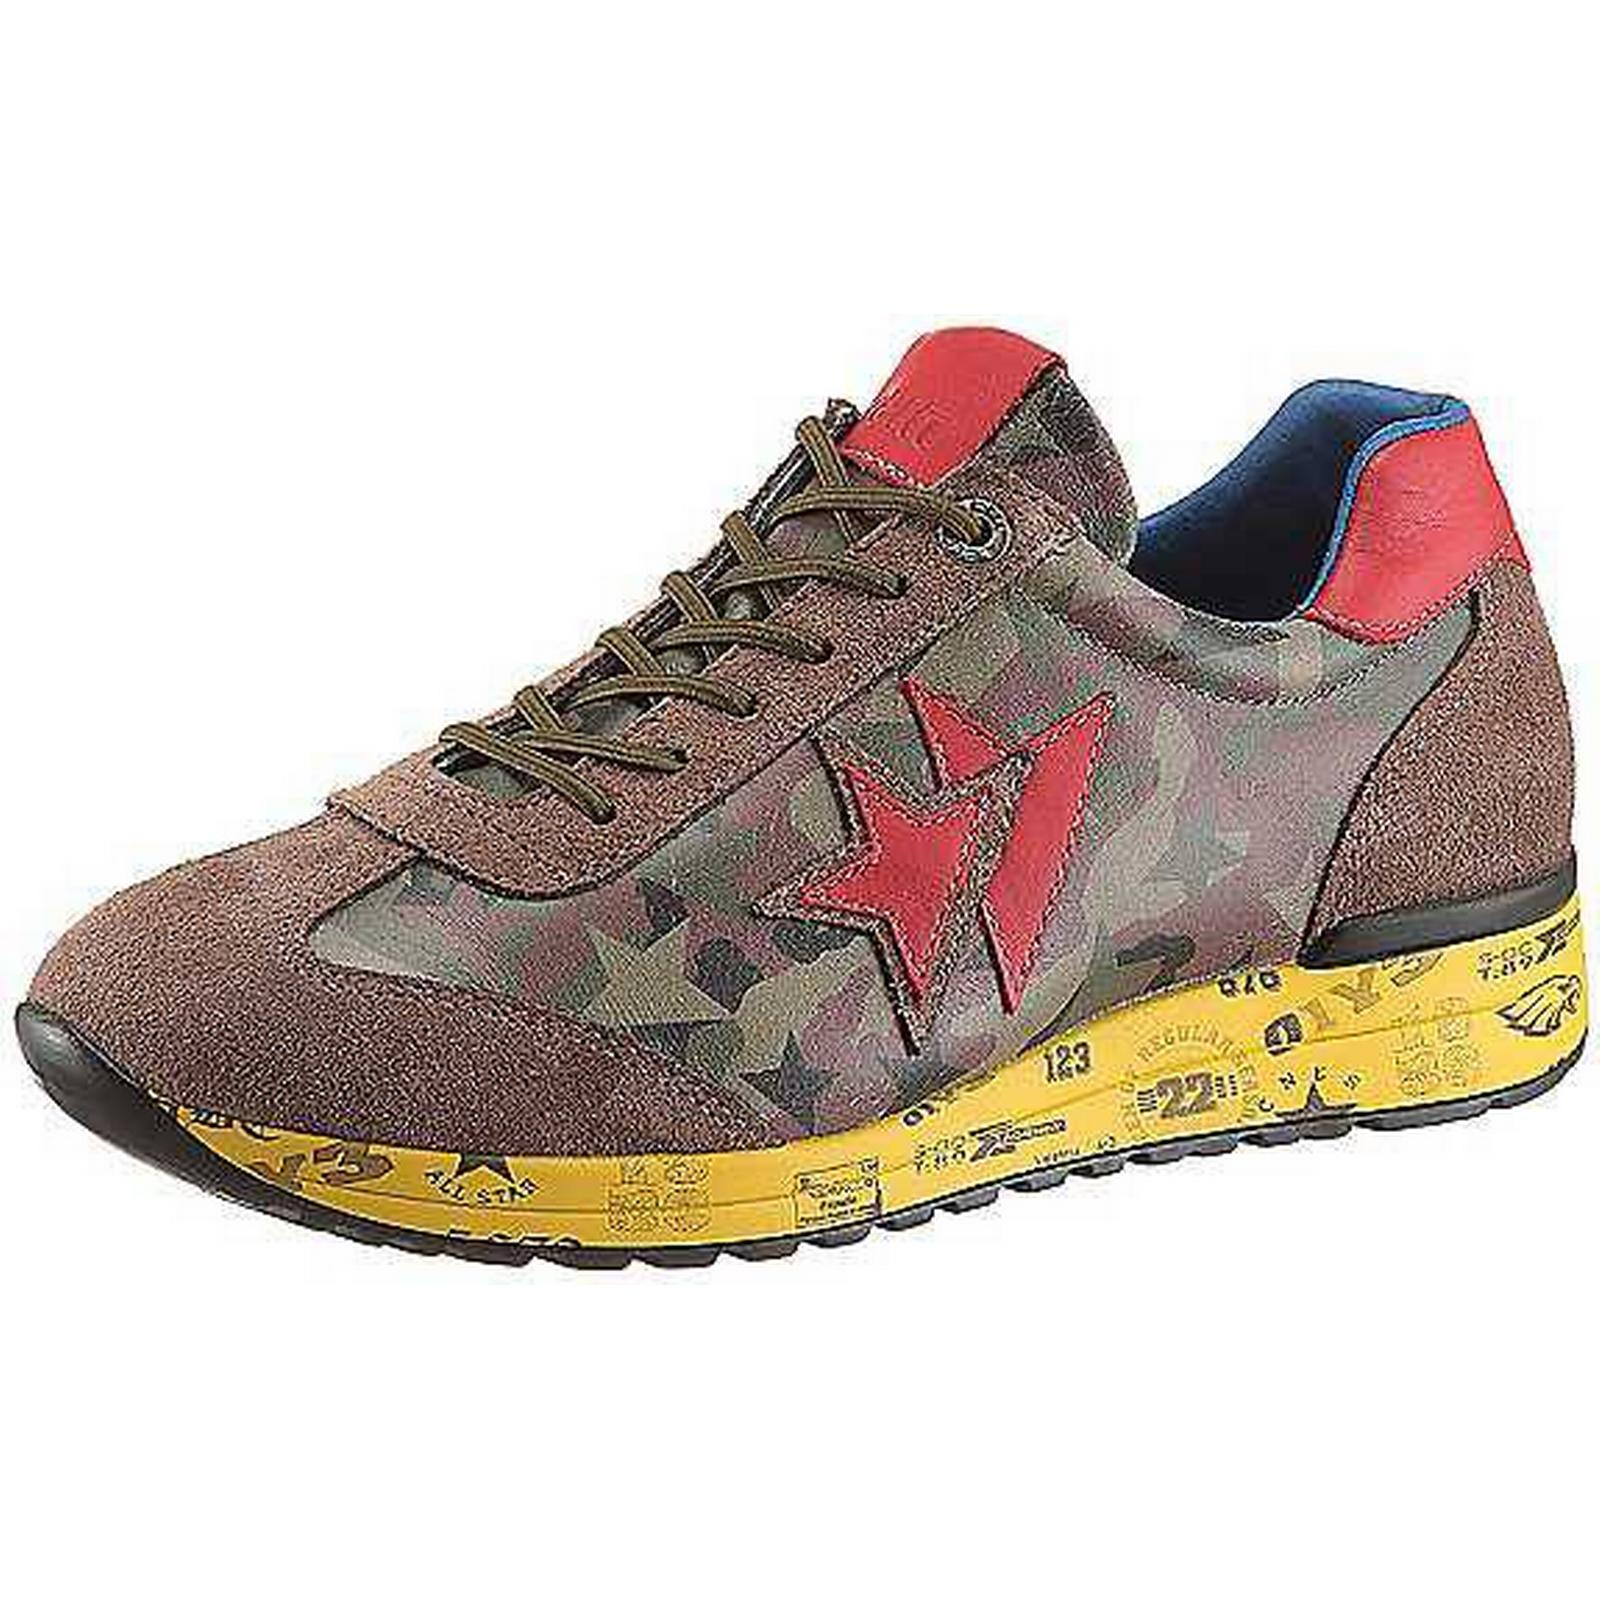 Cetti Camouflage Camouflage Cetti Print Trainers By Cetti 13c05a